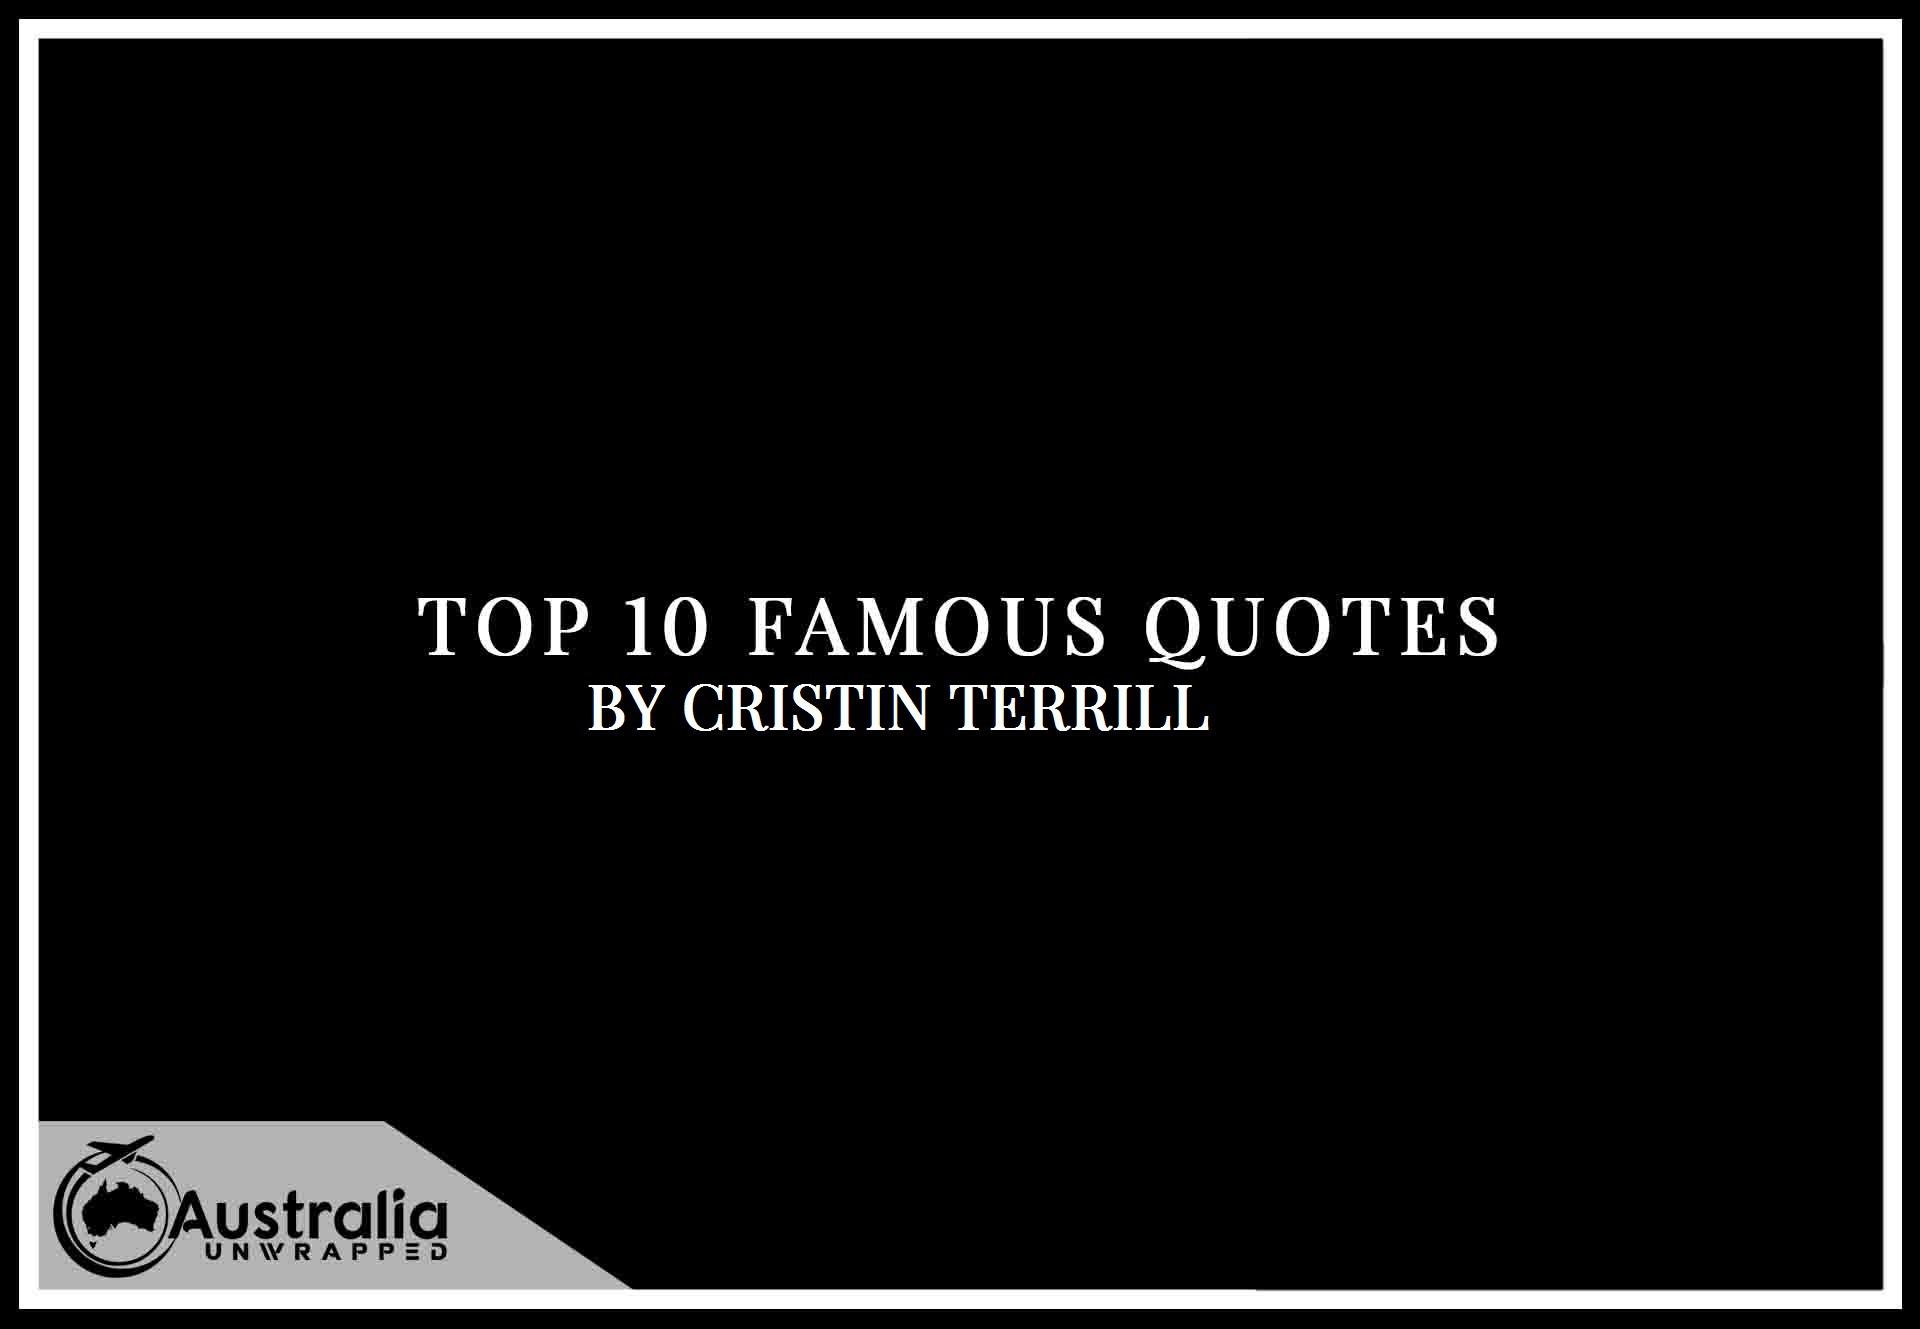 Cristin Terrill's Top 10 Popular and Famous Quotes